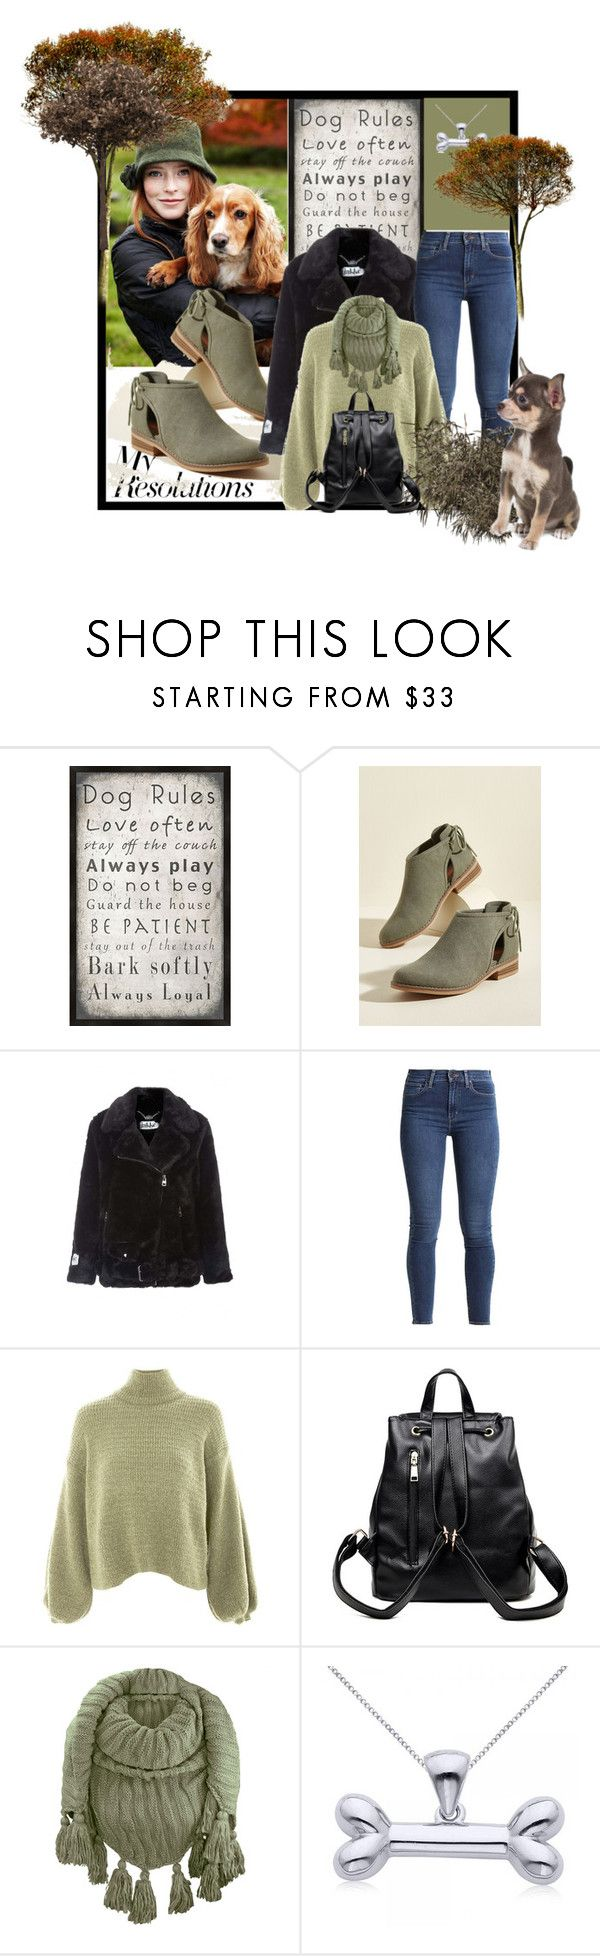 """""""#PolyPresents: New Year's Resolutions  Dog"""" by nanni33 ❤ liked on Polyvore featuring PTM Images, Rocket Dog, Jakke, Topshop, Allurez, contestentry and polyPresents"""